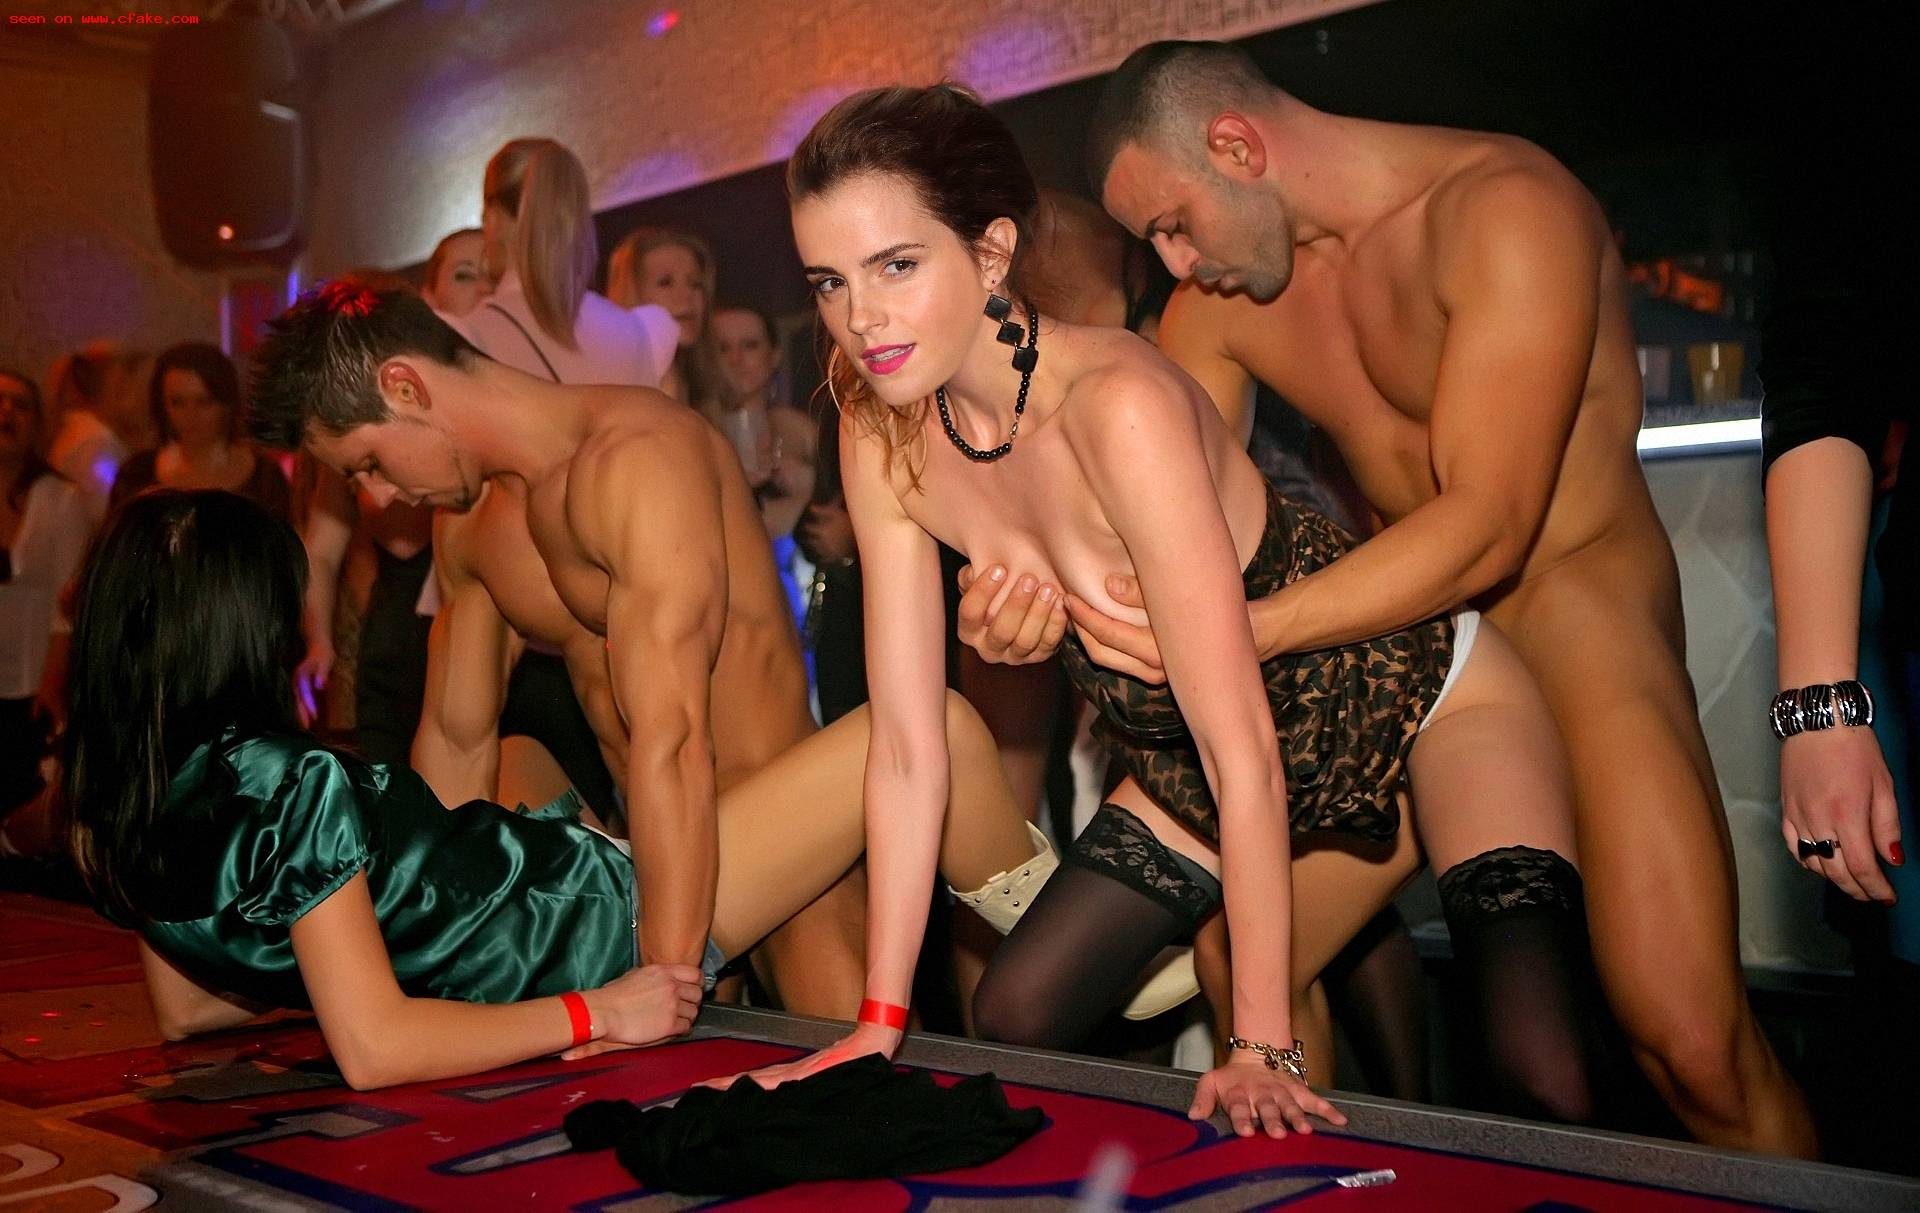 Group Sex Events In A Local Bar Free Porn Pics Youporn